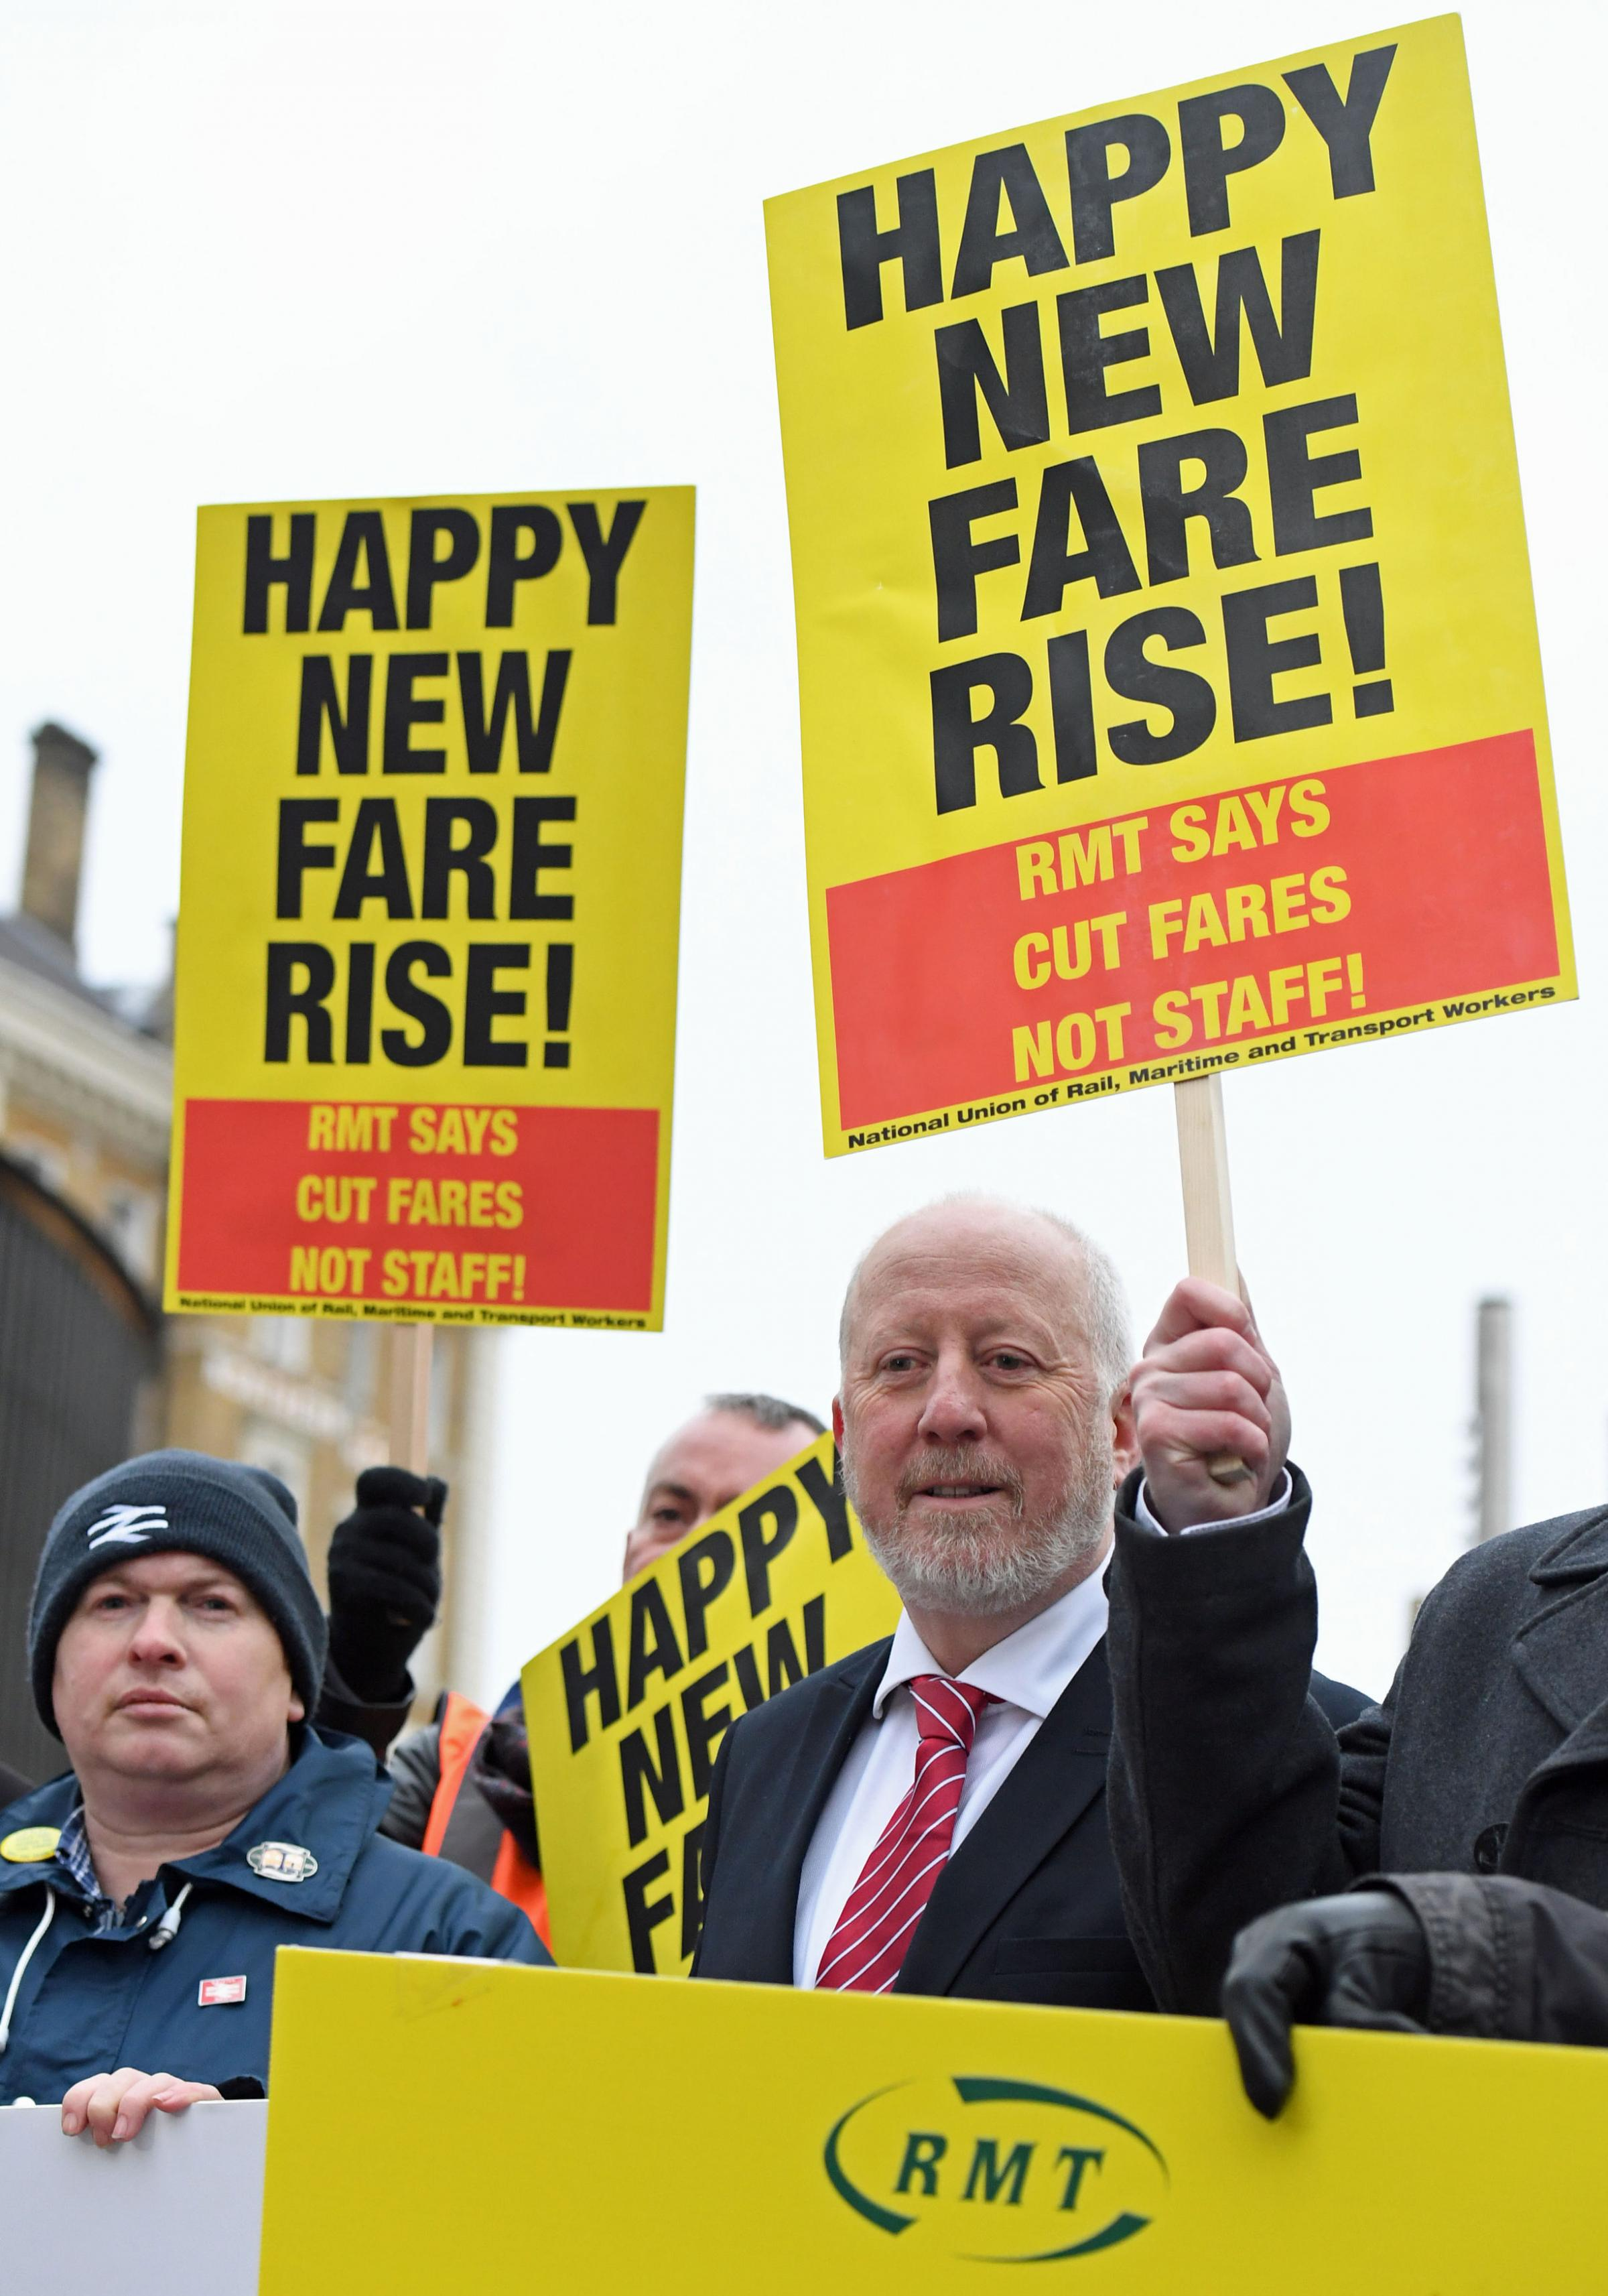 Shadow Transport Secretary Andy McDonald (centre) joins campaigners protesting against rail fare increases outside King's Cross station in London. Picture: PA